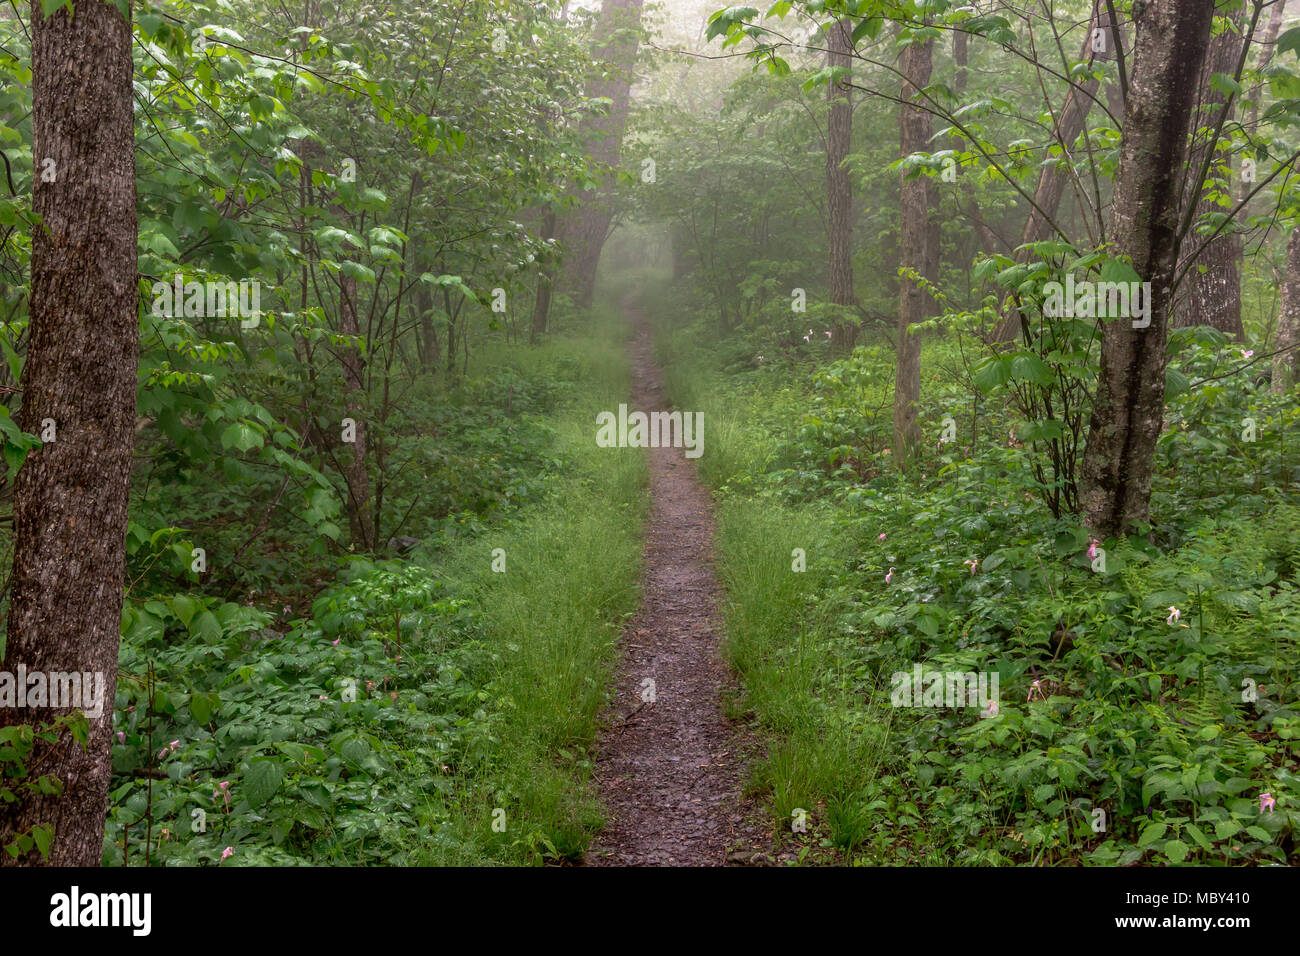 The Appalachian trail cuts through foggy woods in Shenandoah National Park - Stock Image